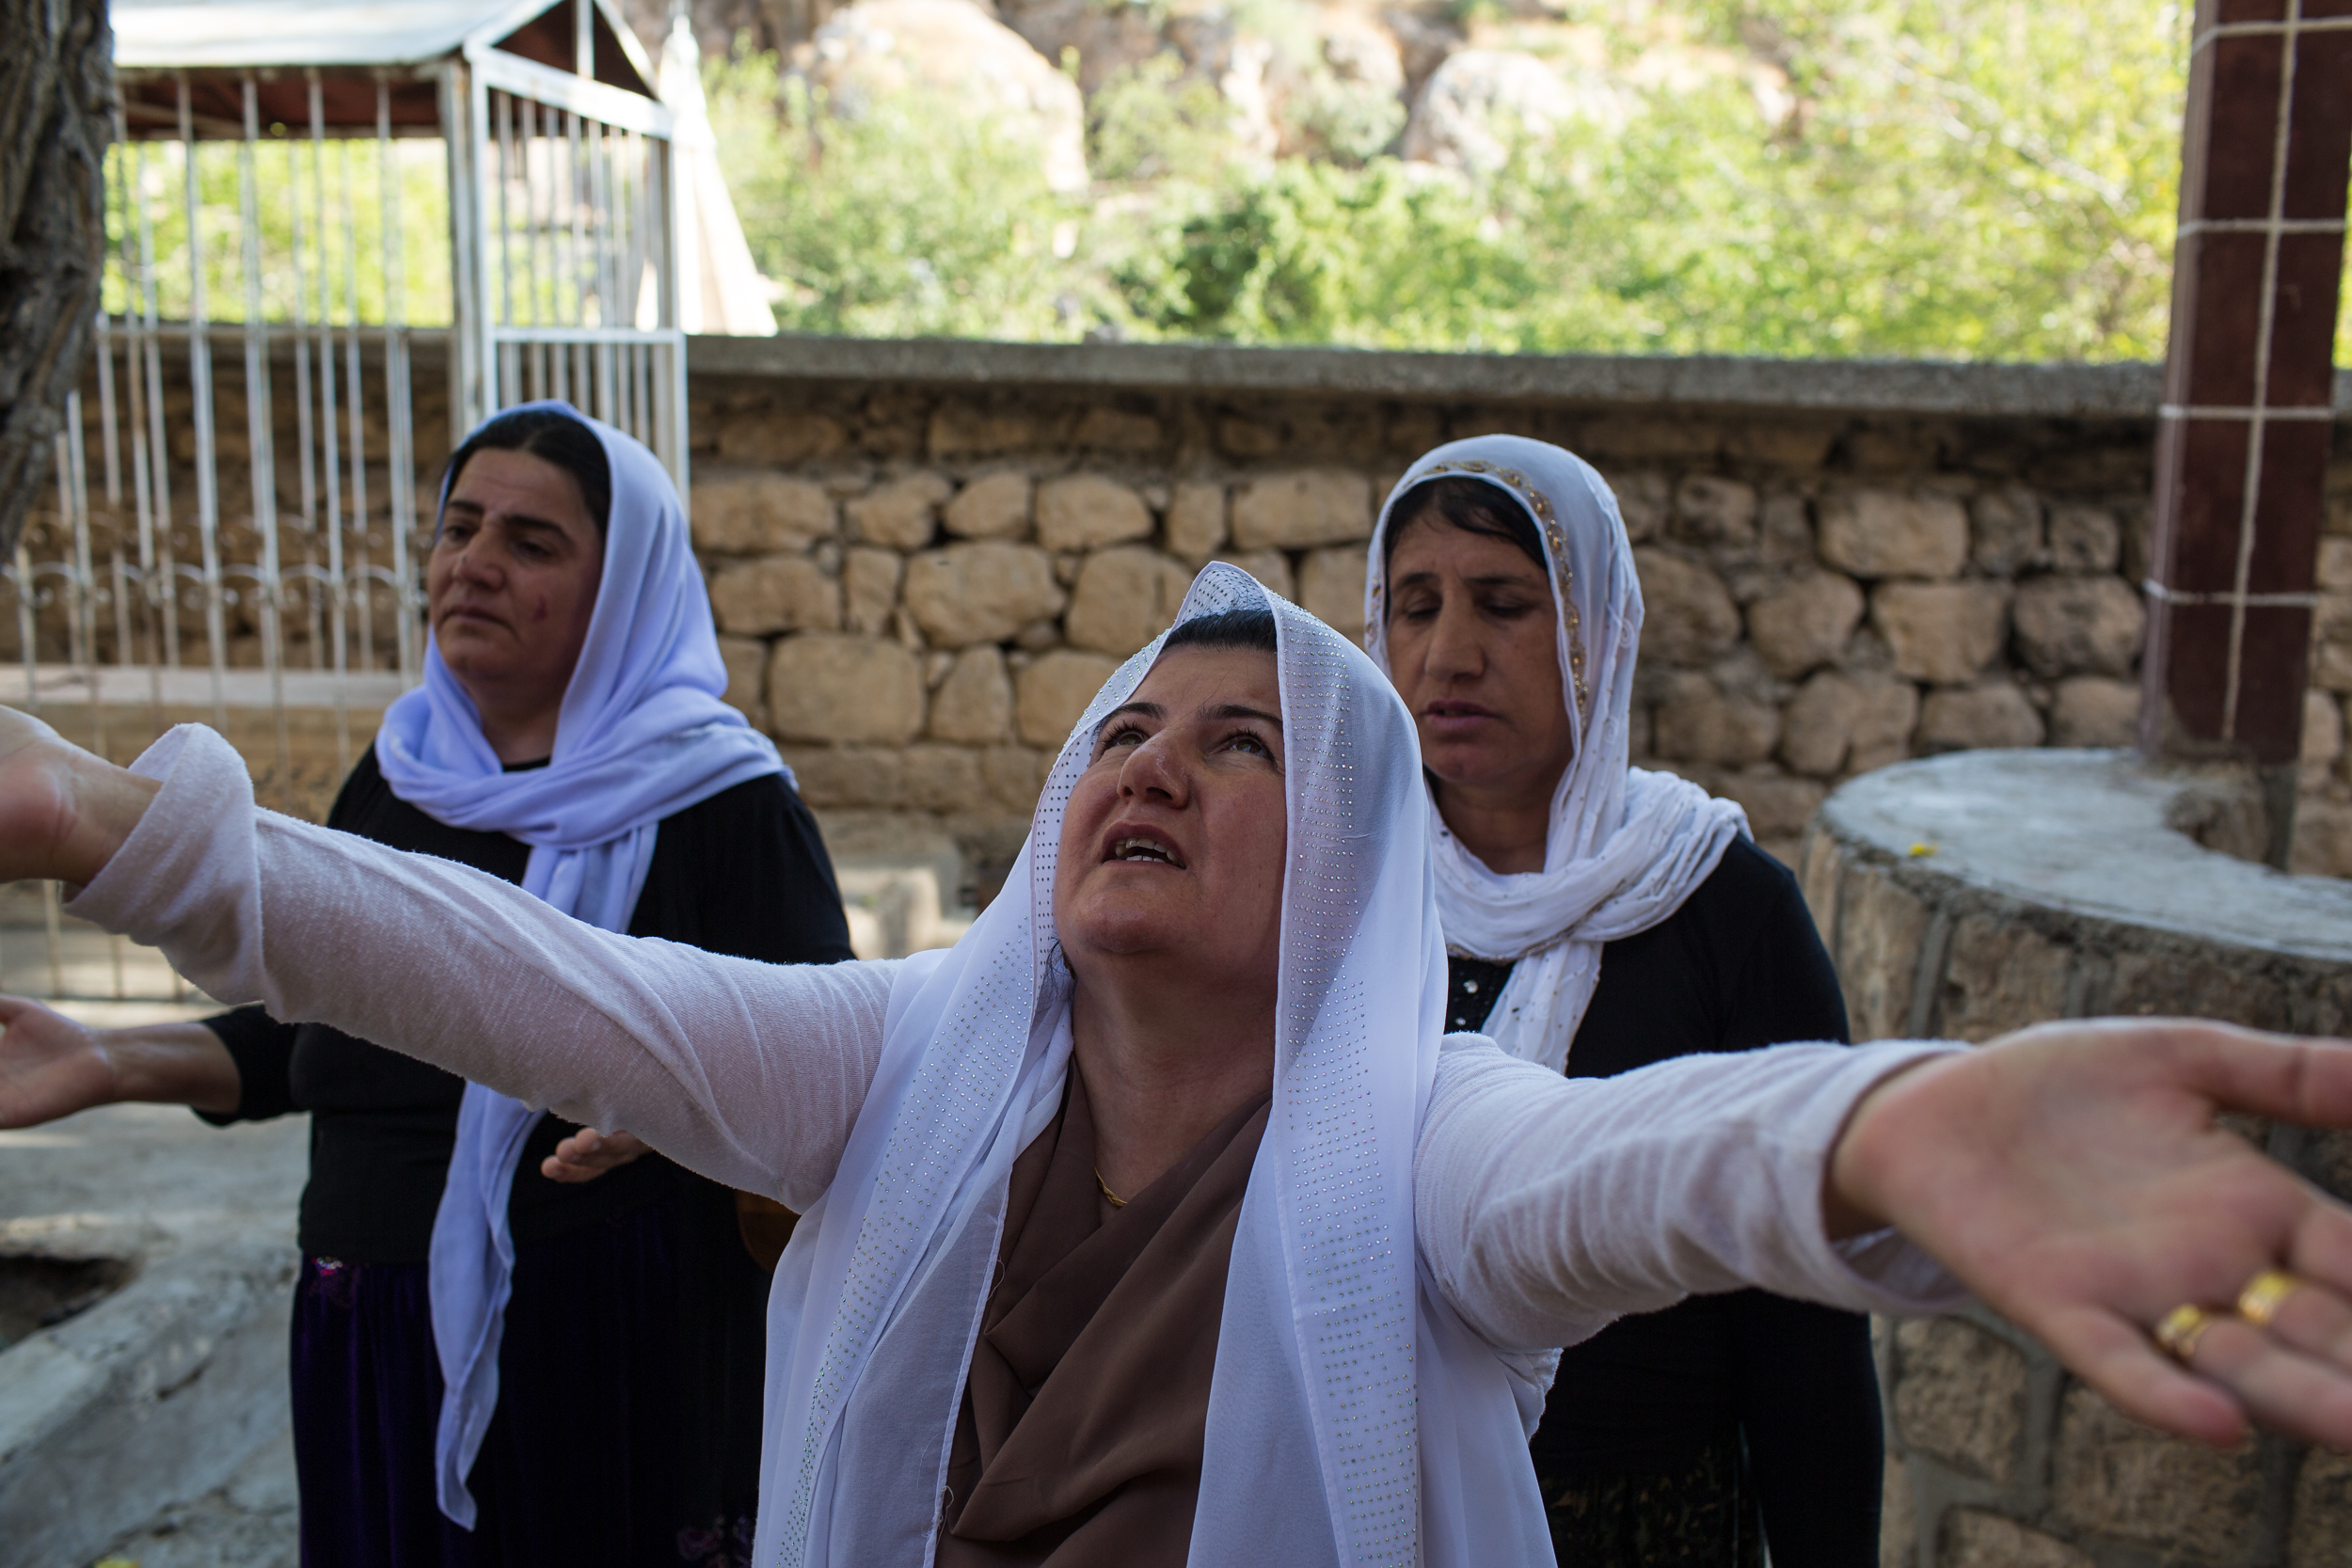 A Yezidi woman prays on the sacred grounds of Lalish.